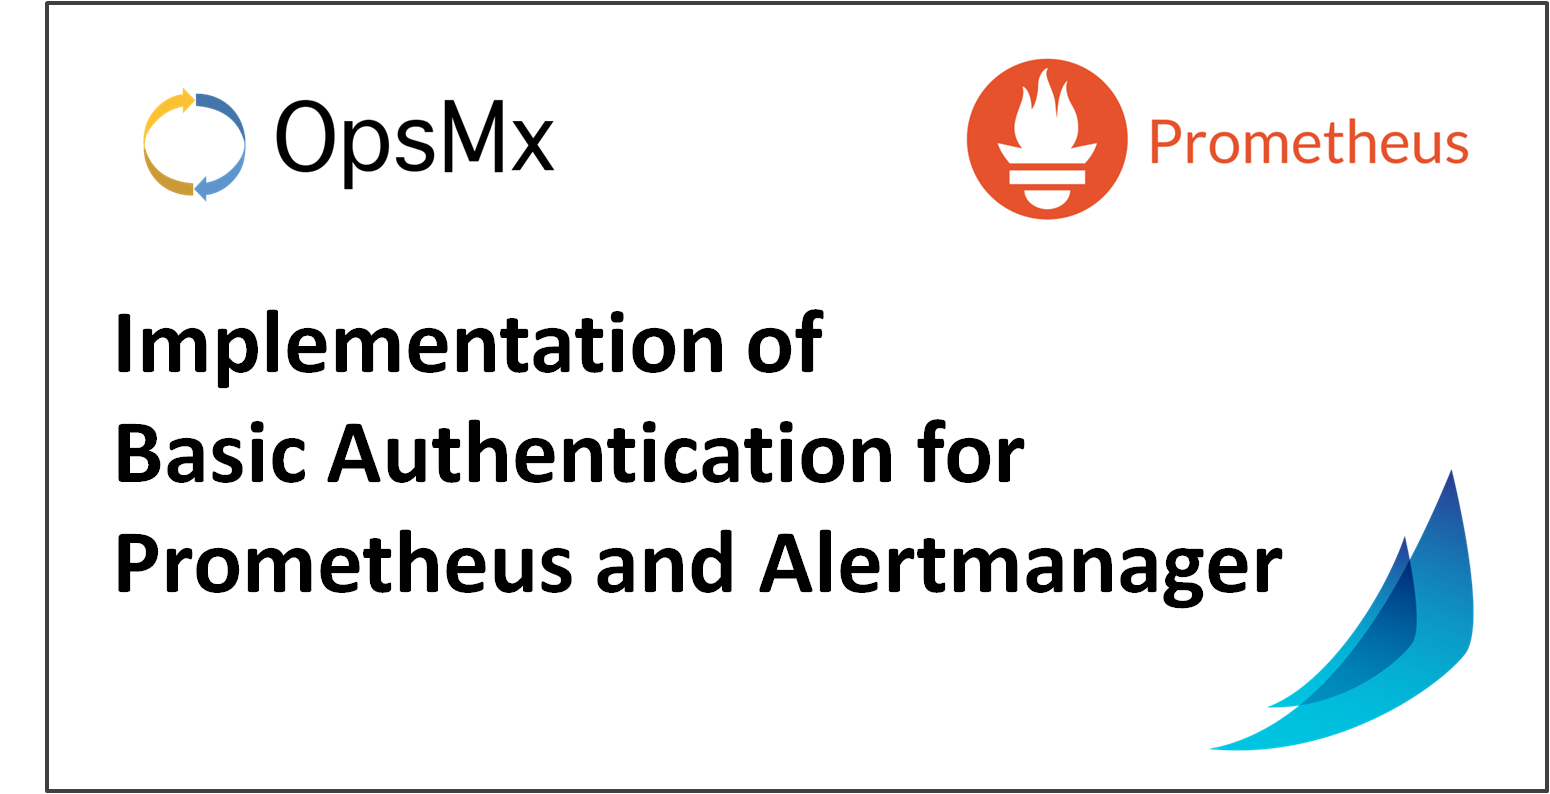 Implementation of Basic Authentication for Prometheus and Alertmanager